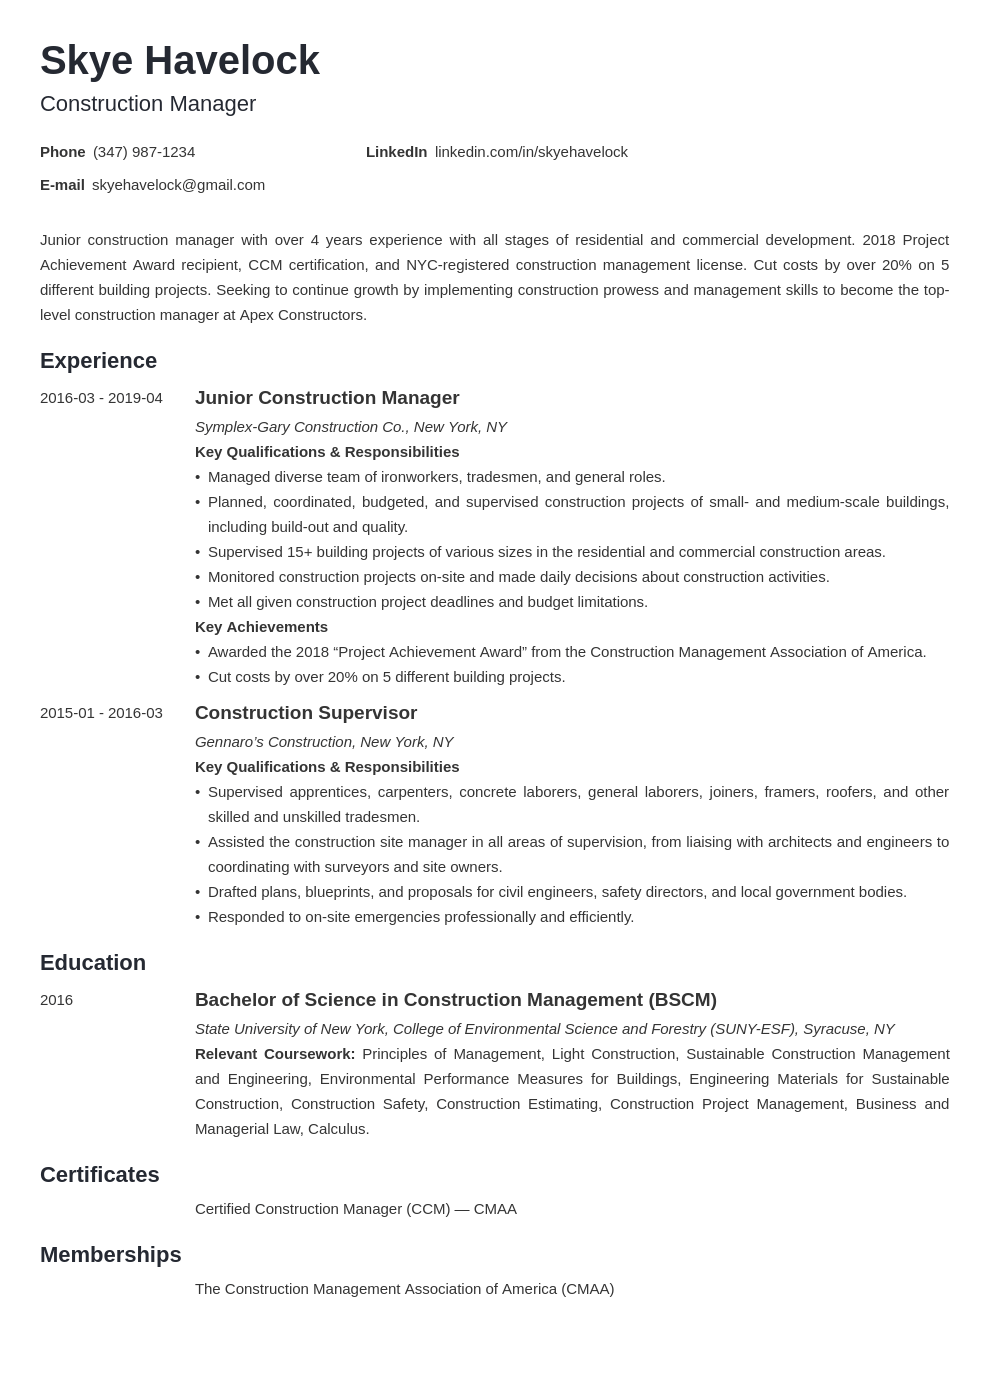 Construction Manager Resume Example Template Minimo Resume Examples Construction Management Manager Resume